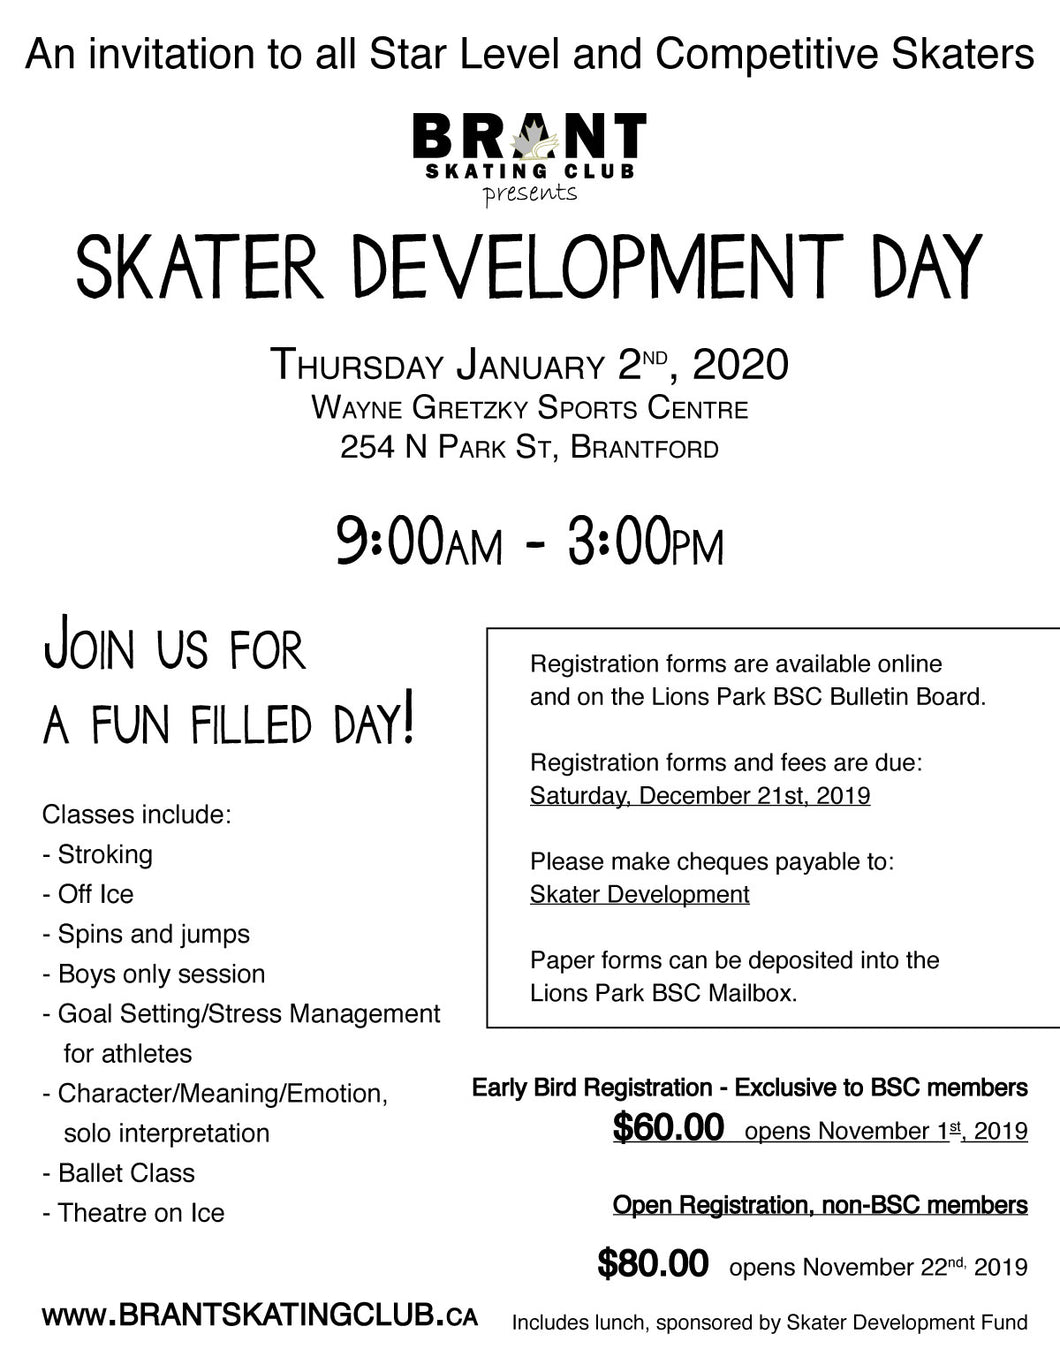 BSC - Skater Development - Development Day Event